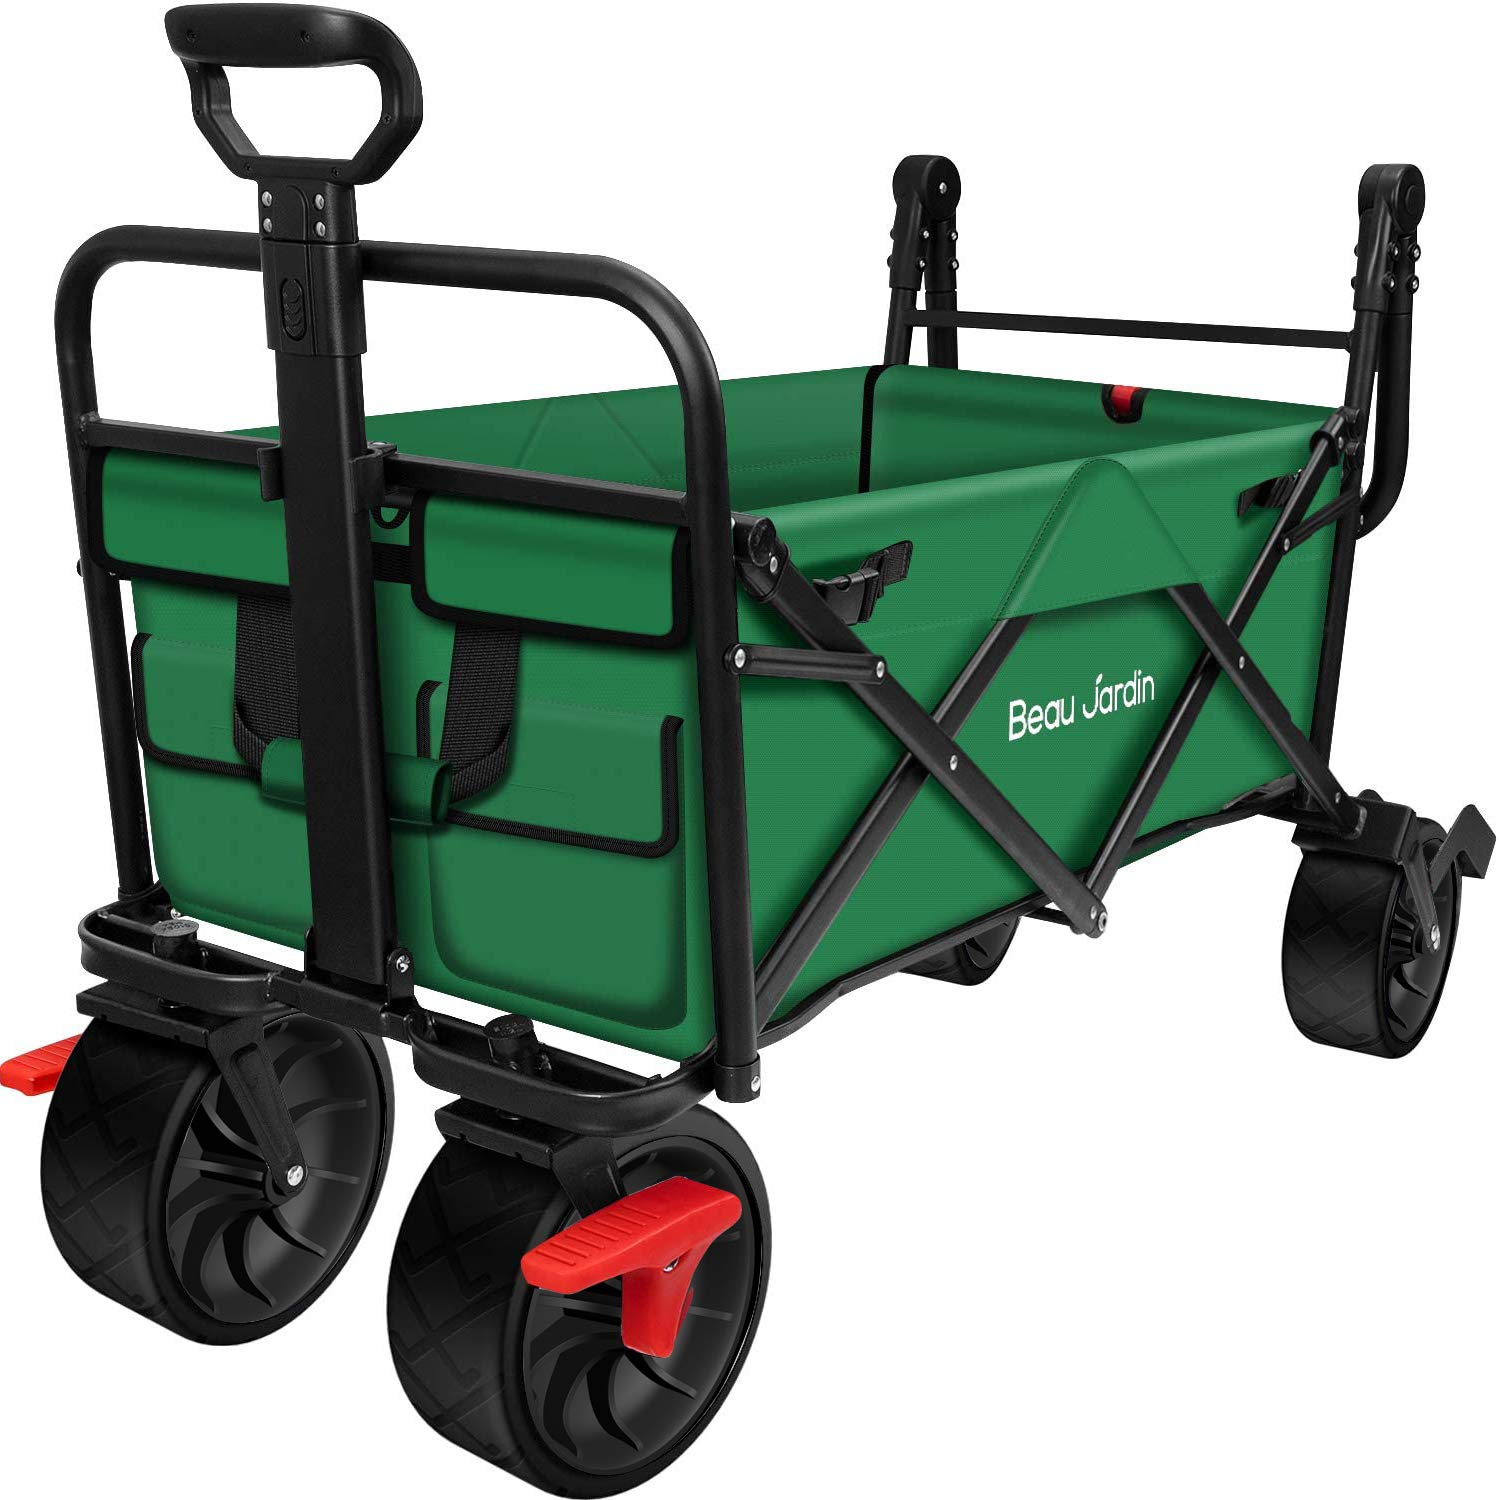 BEAU JARDIN Folding Wagon Cart With Brake Free Standing Collapsible Utility Camping Grocery Canvas Fabric Sturdy Portable Rolling Buggies Outdoor Garden Sport HeavyDuty Shopping Cart Push Wagon Green